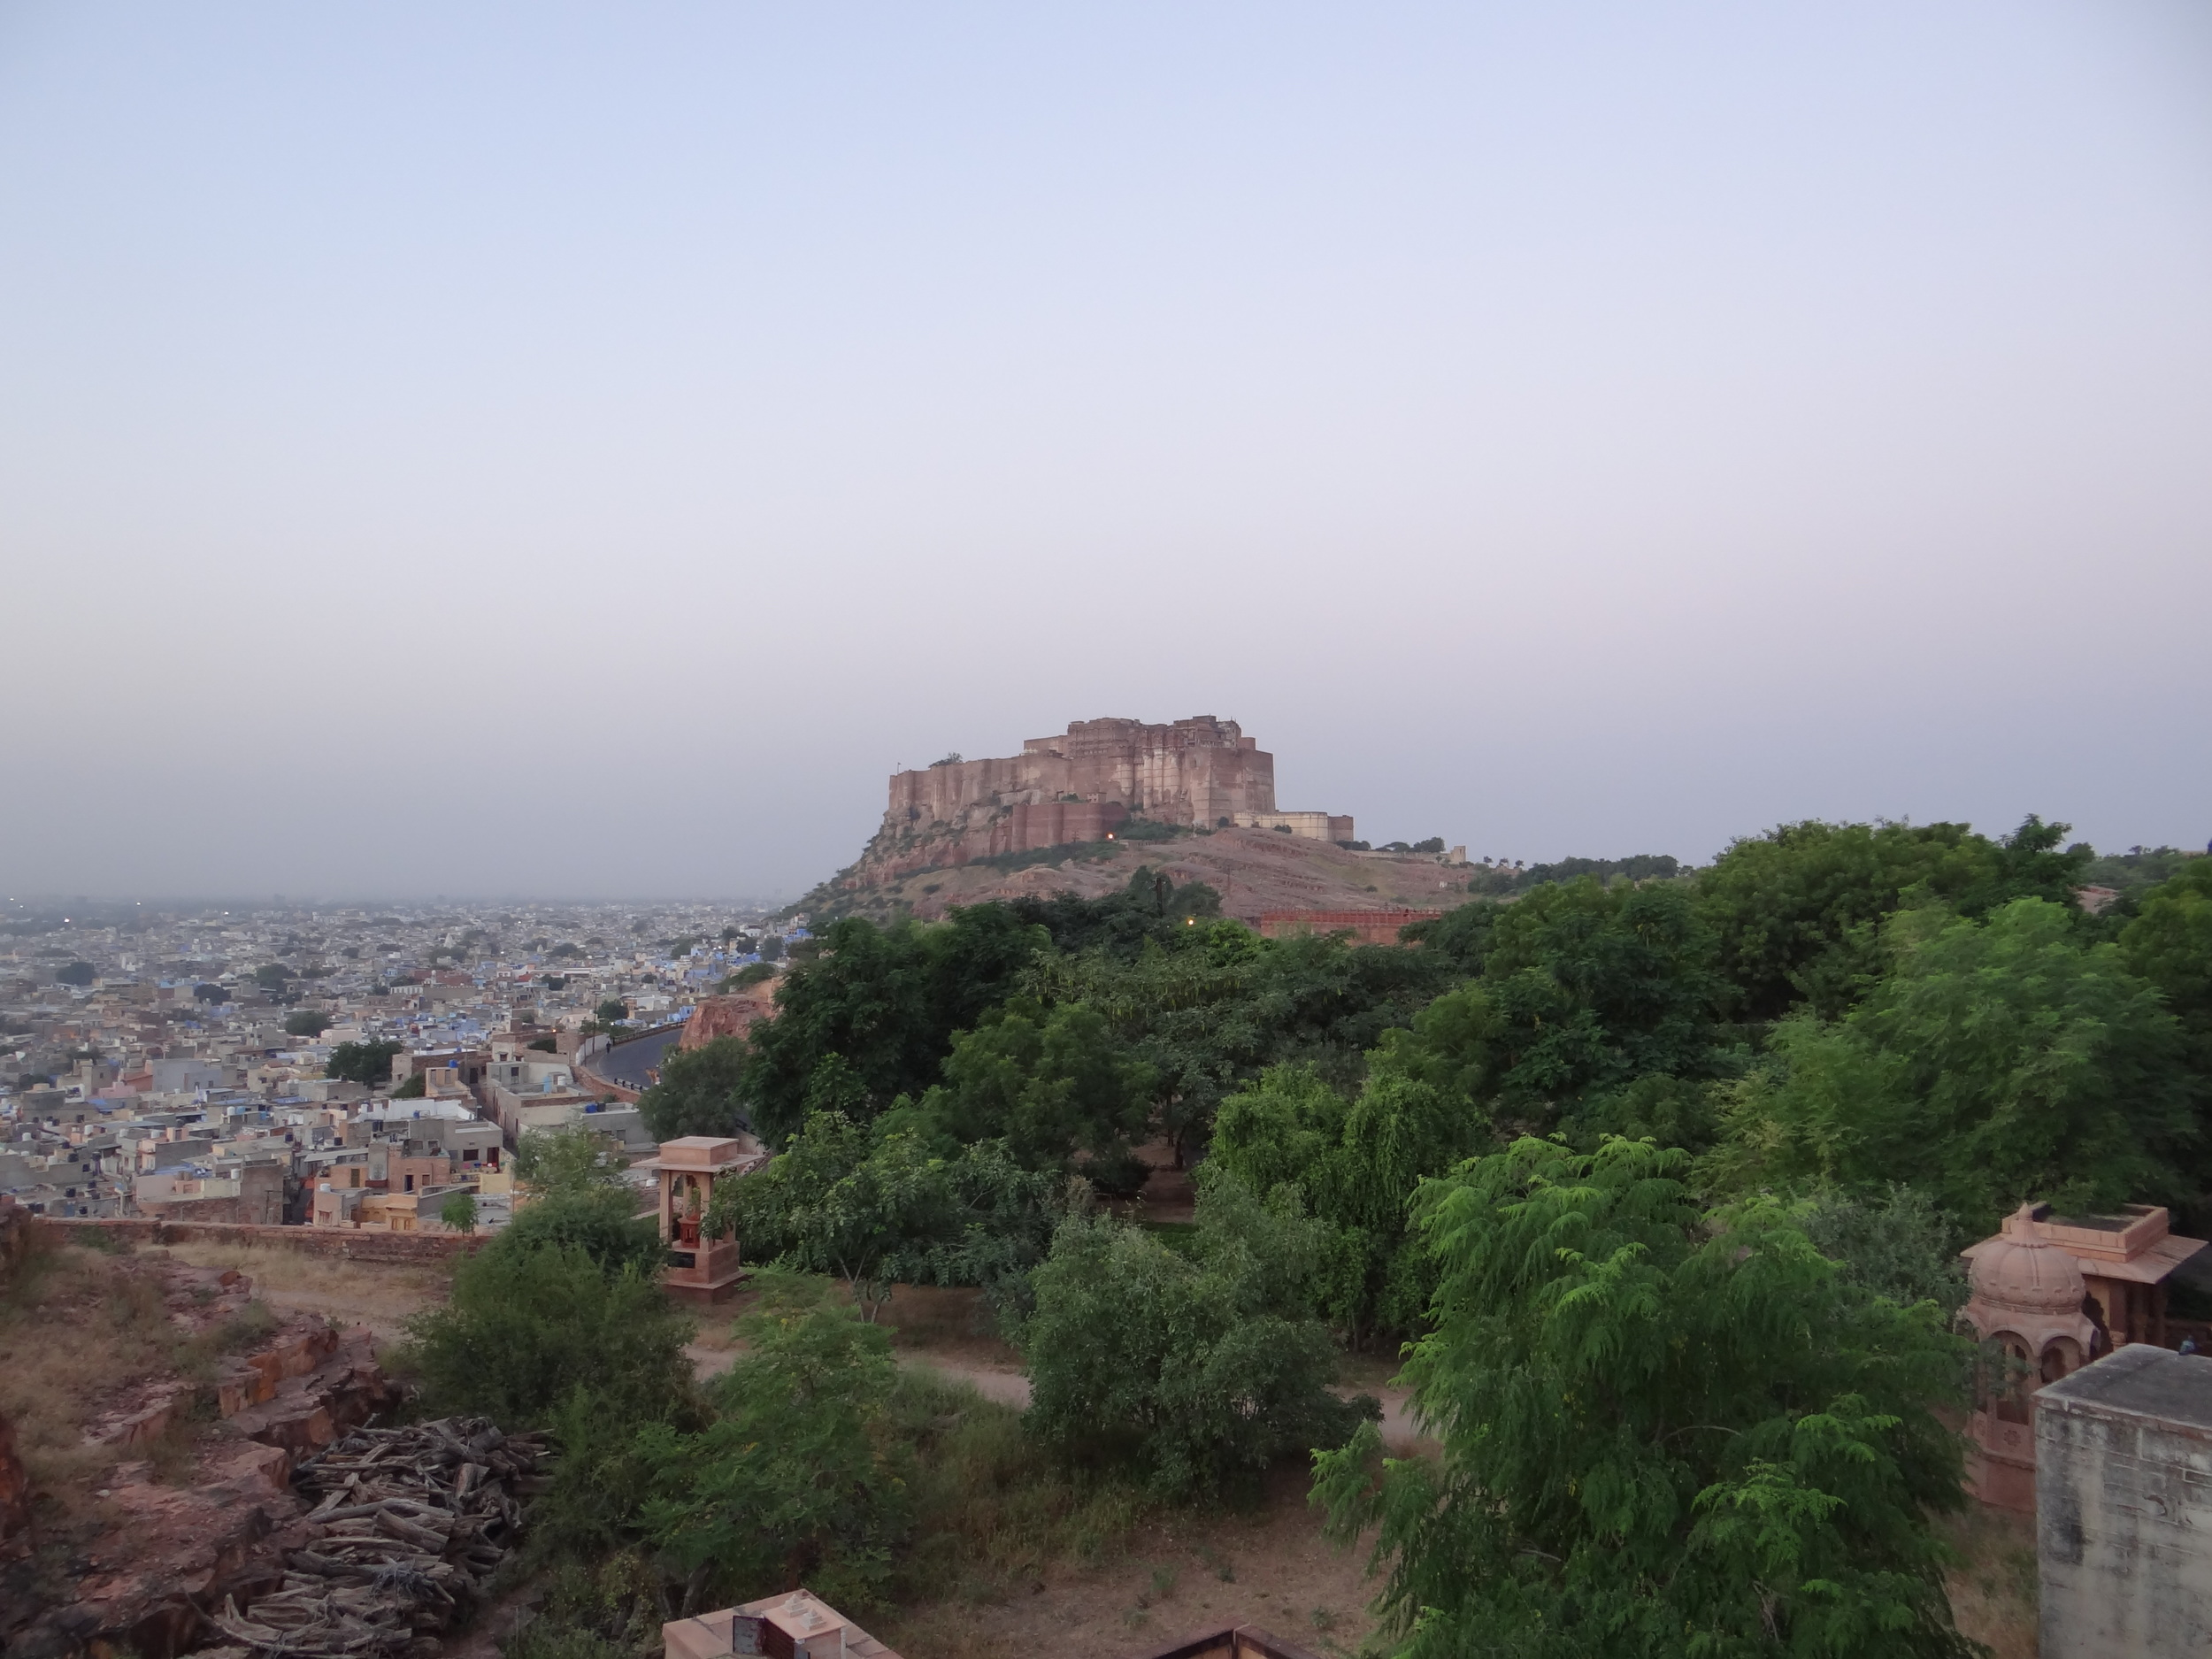 Mehrangarh Fort at 7 in the morning